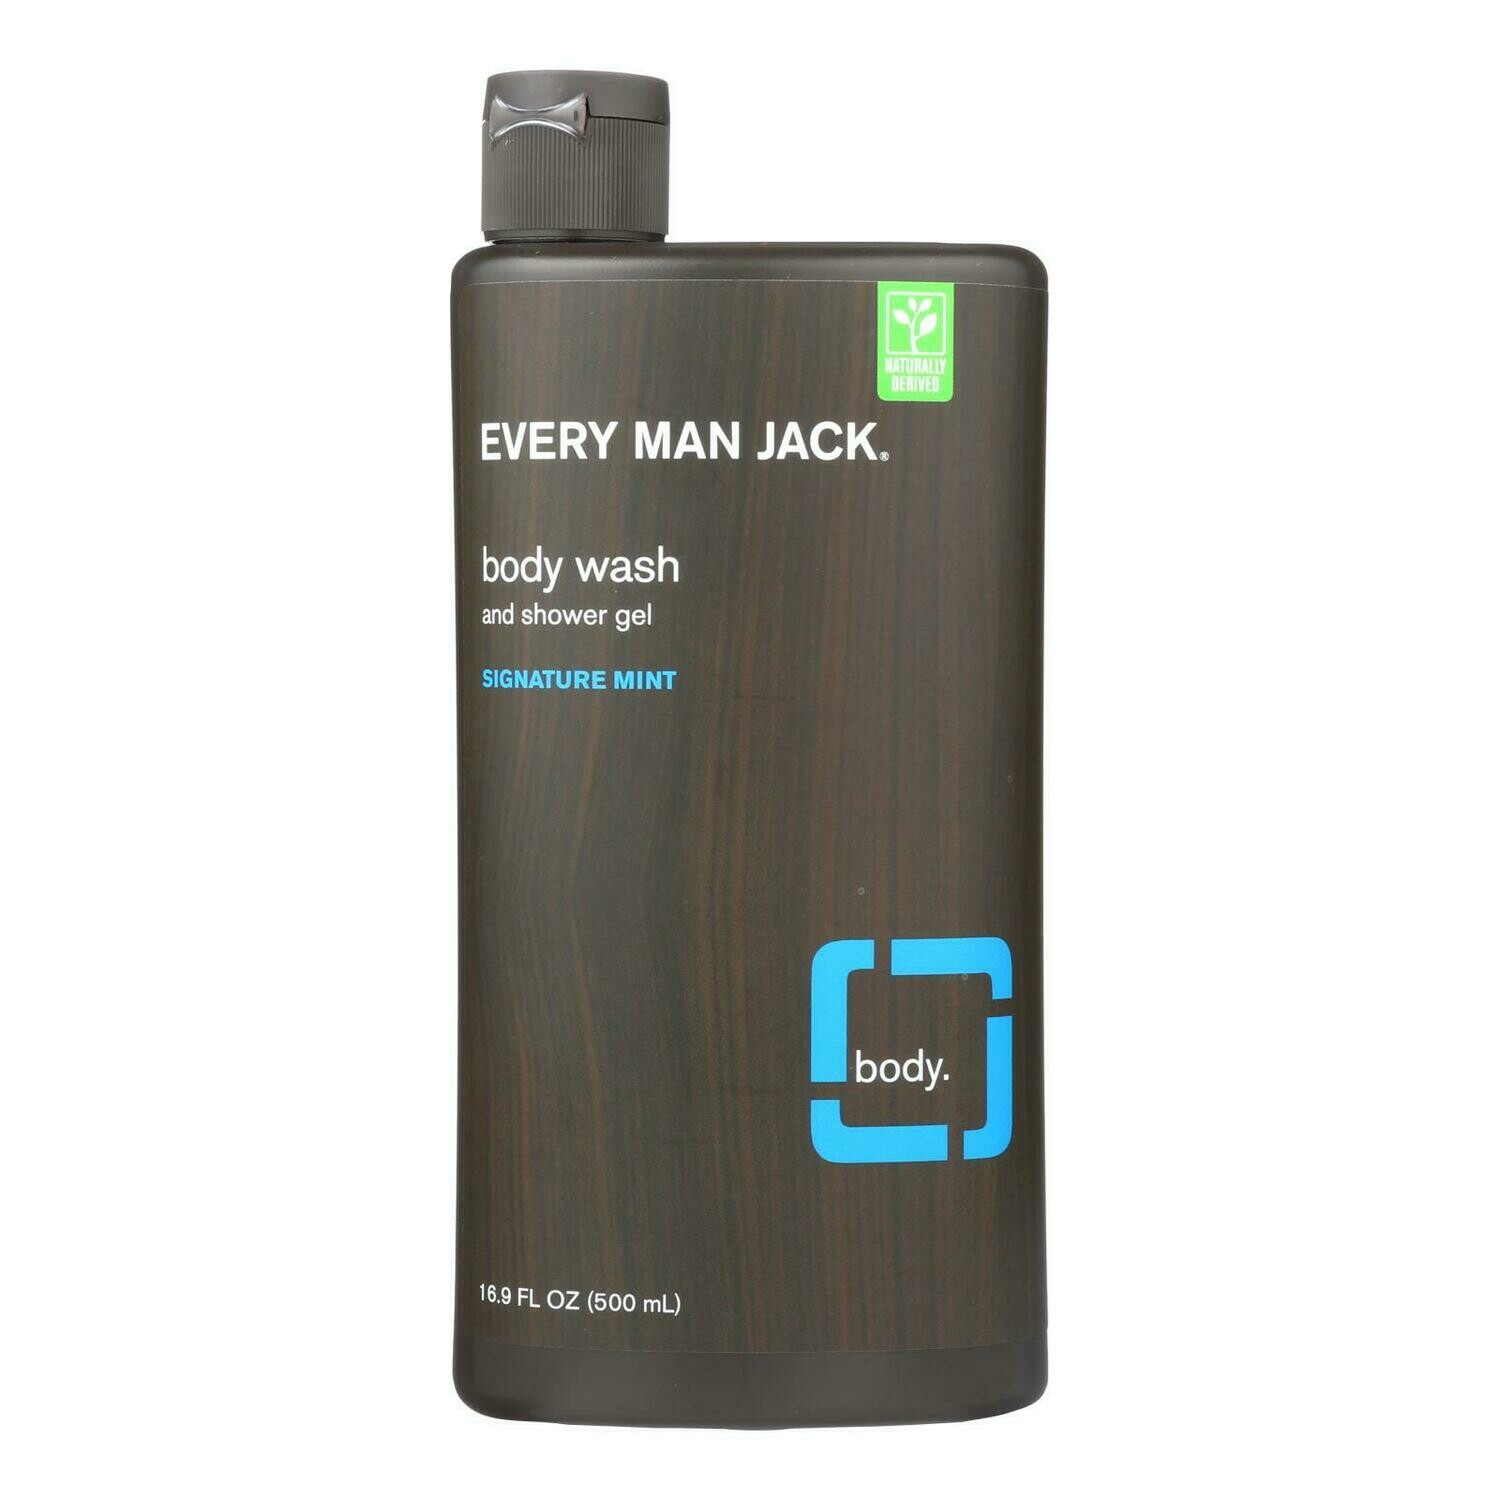 Every Man Jack Body Wash - Signature Mint - 16.9 oz (EO 0516500)